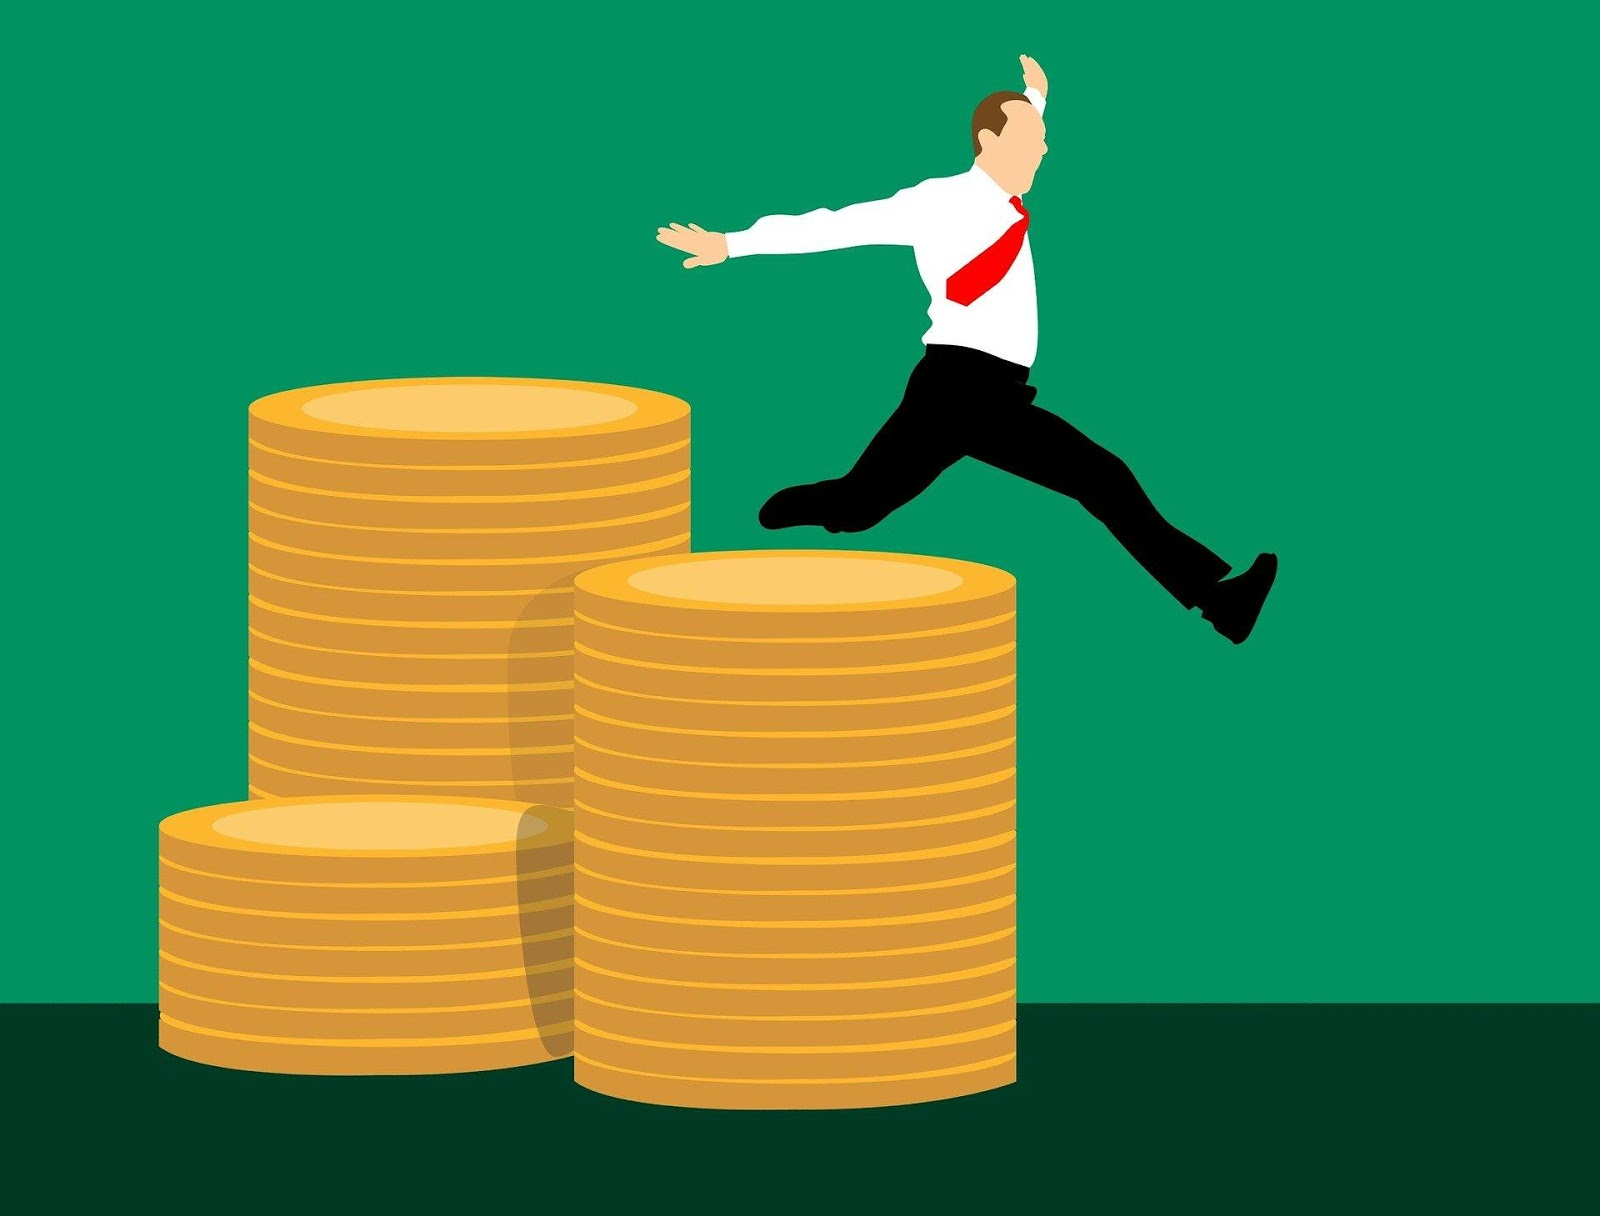 infographic of a man jumping from a stack of coins